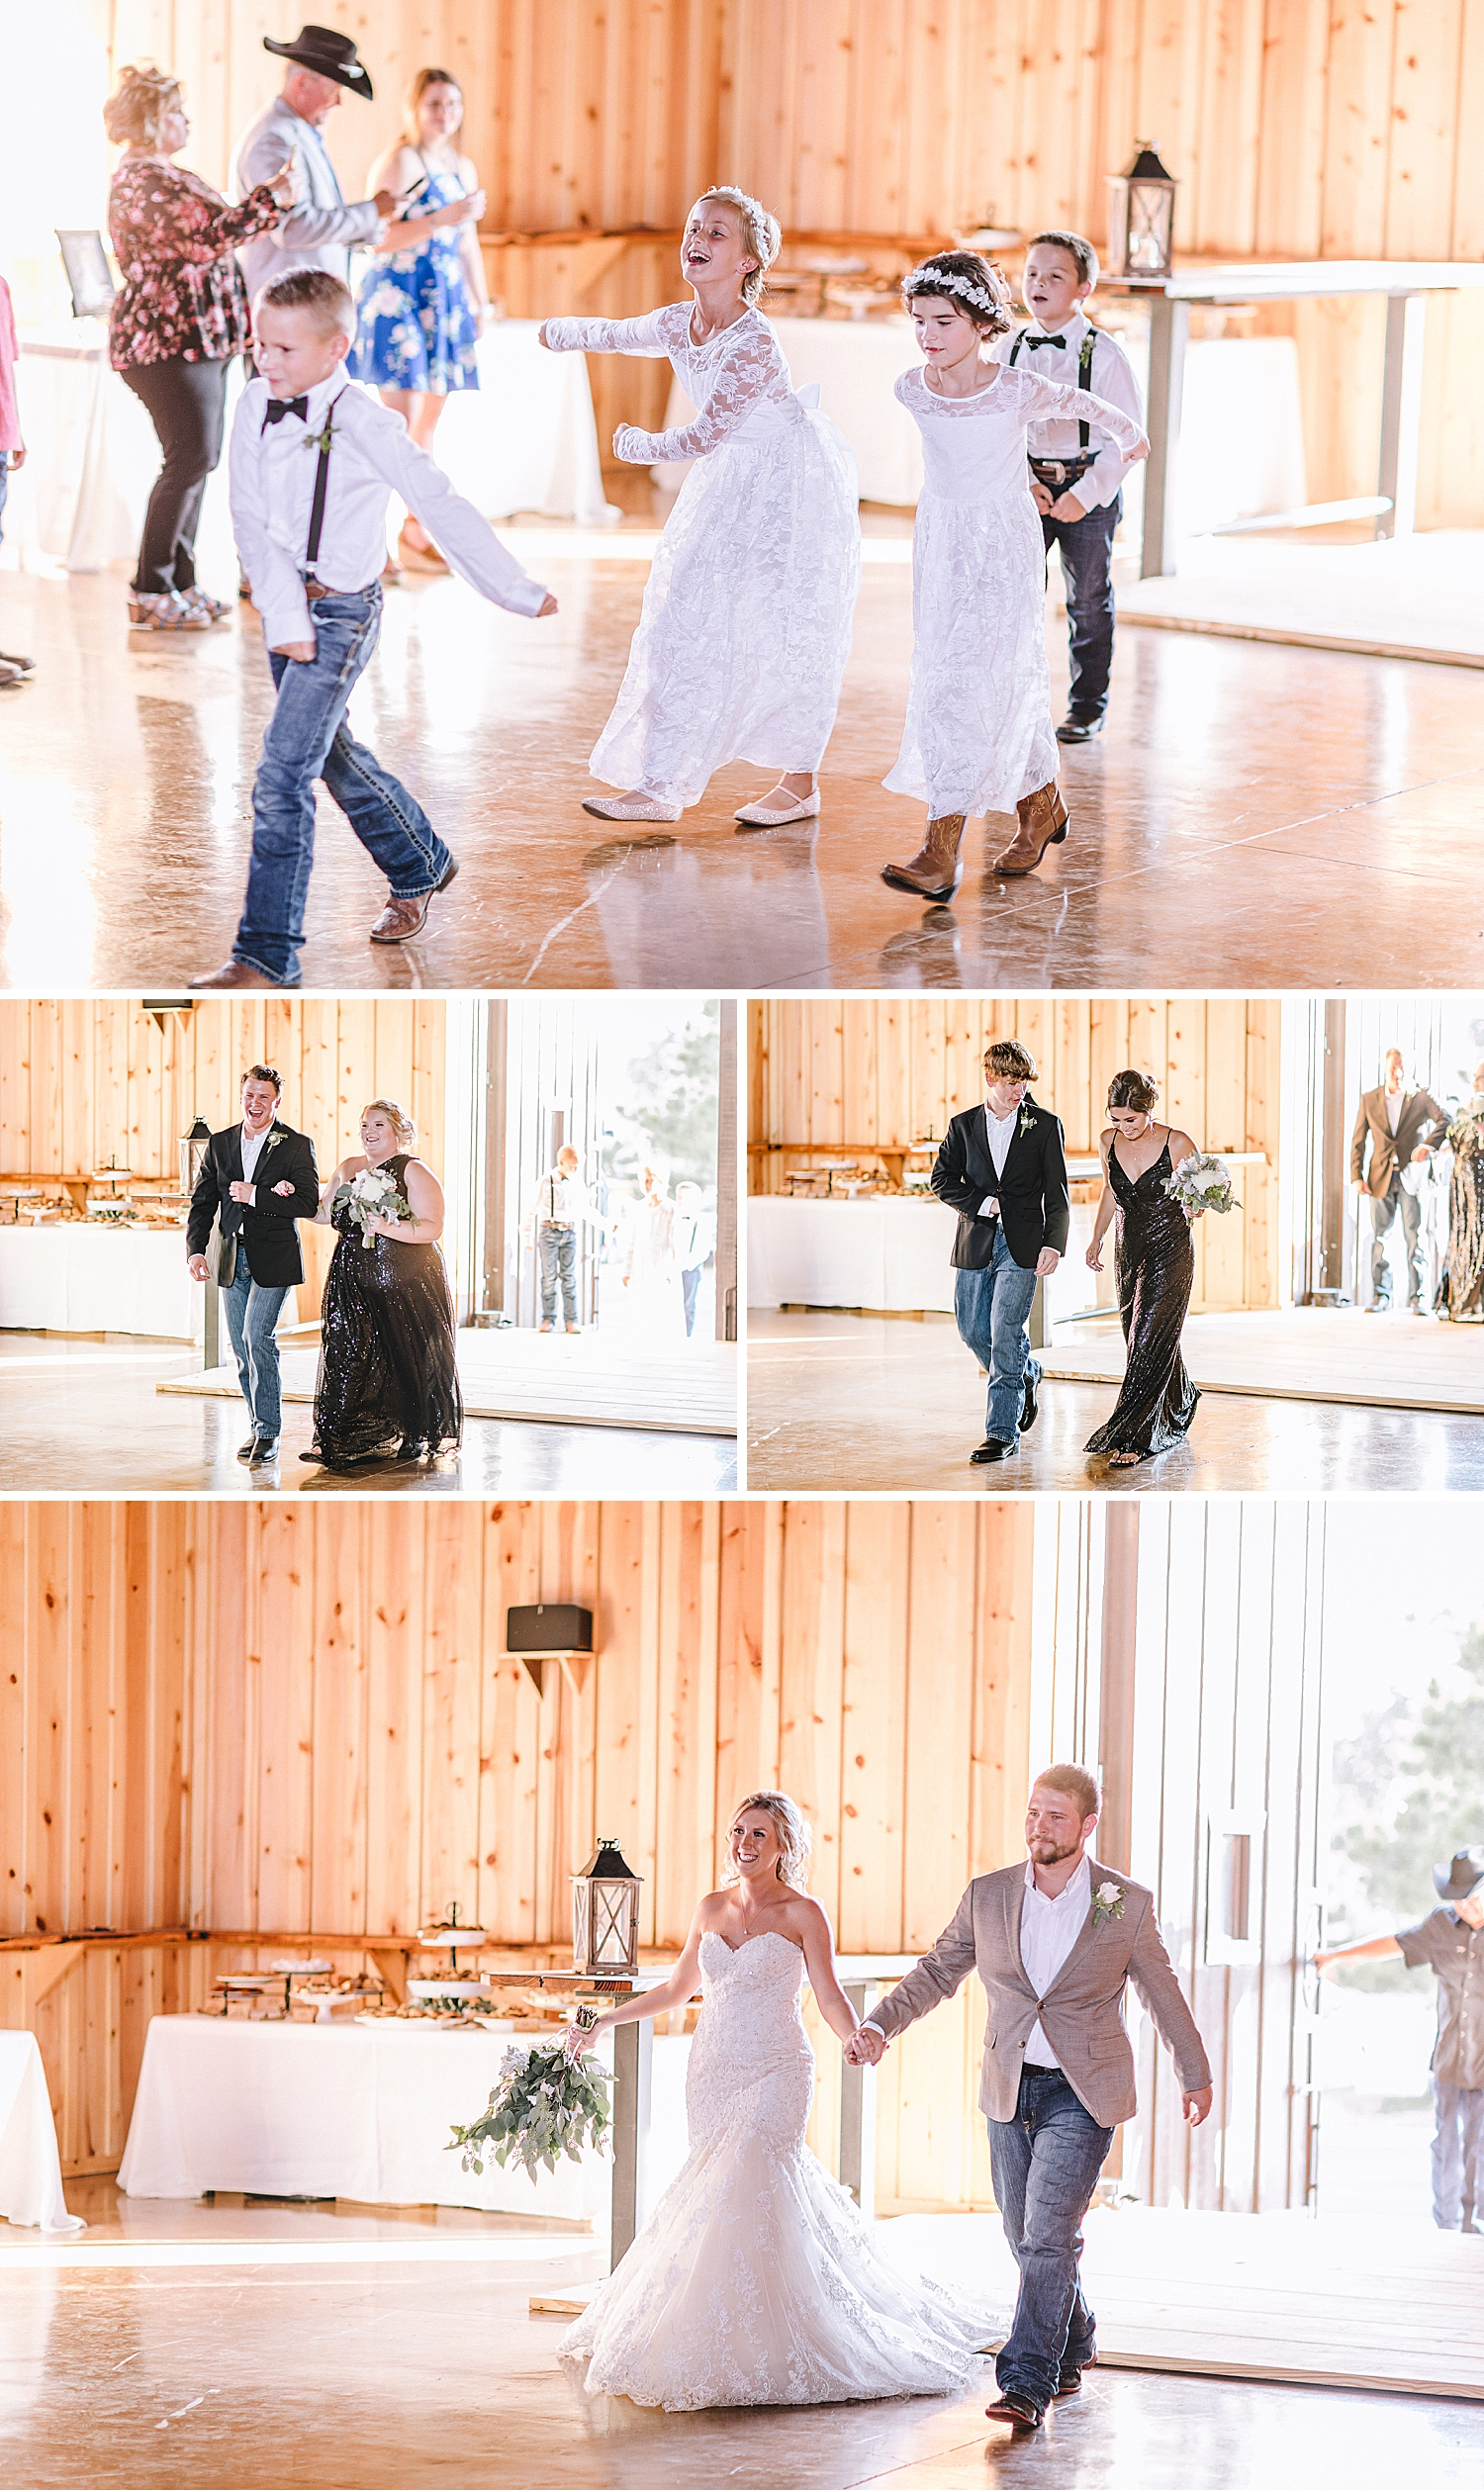 Rackler-Ranch-LaVernia-Texas-Wedding-Carly-Barton-Photography_0112.jpg